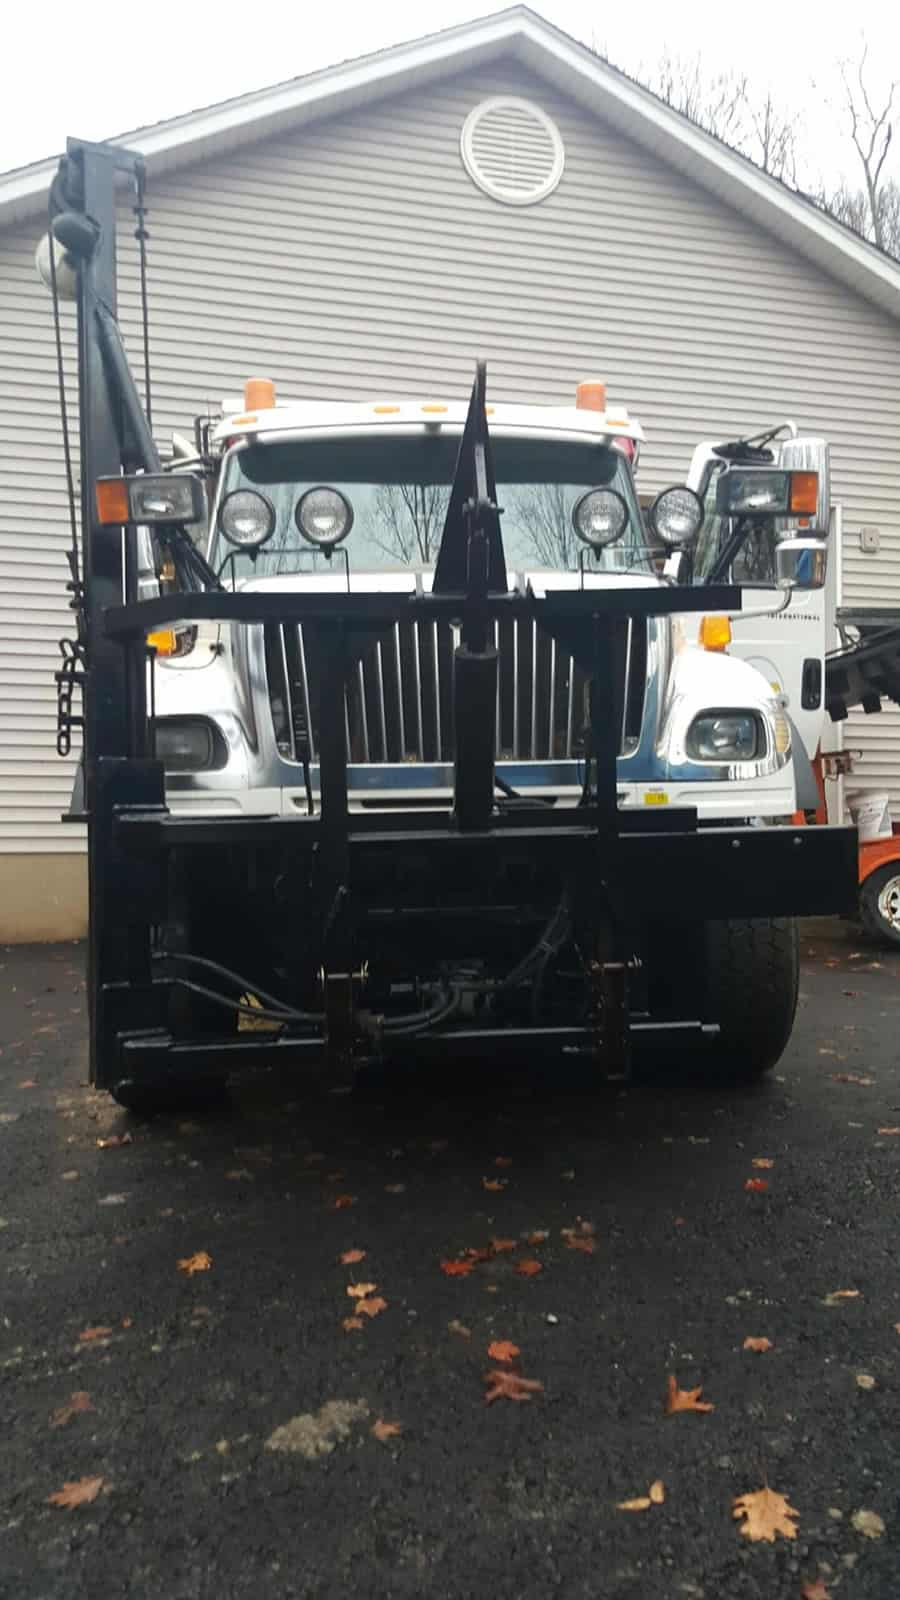 specialized snow removal truck from CSB Contractors, Inc.